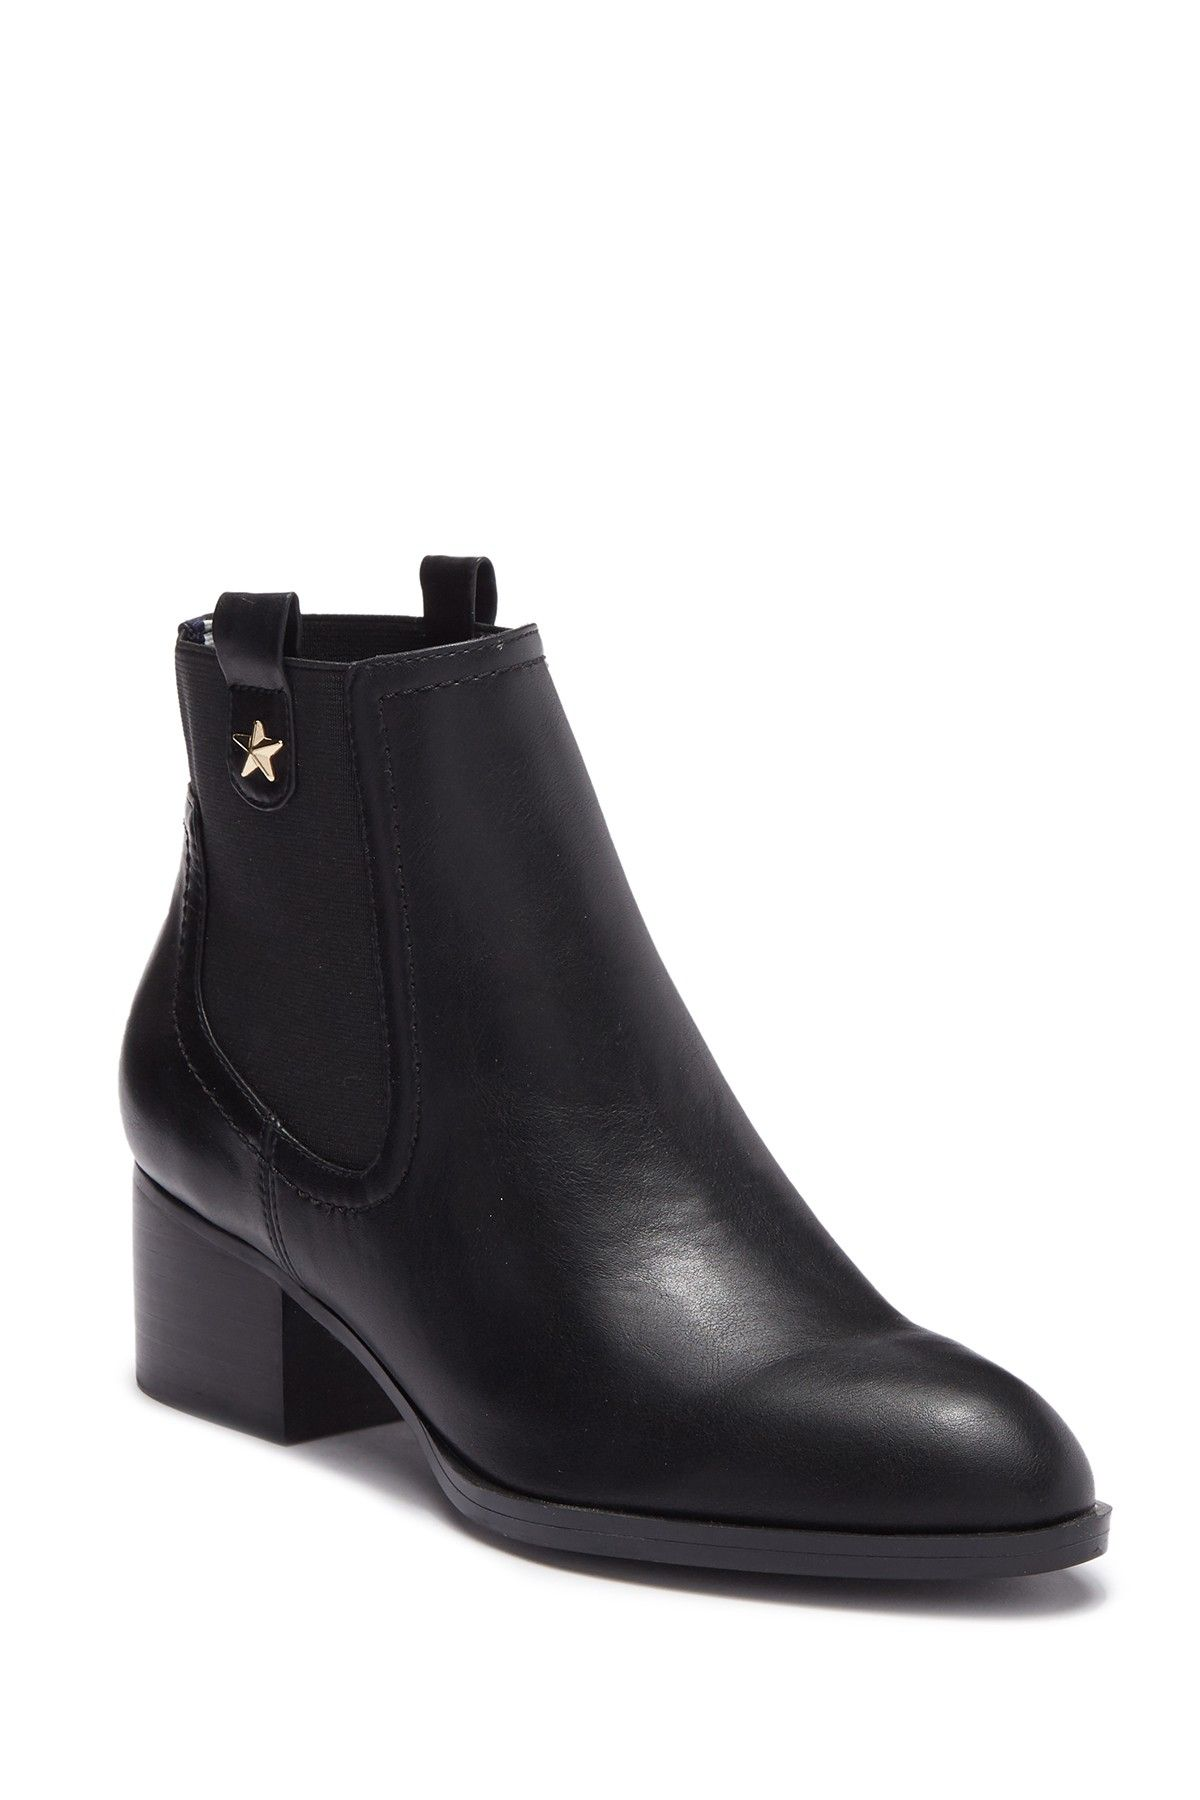 83d2030b8786 Image of Tommy Hilfiger Roxy Faux Leather Chelsea Boot